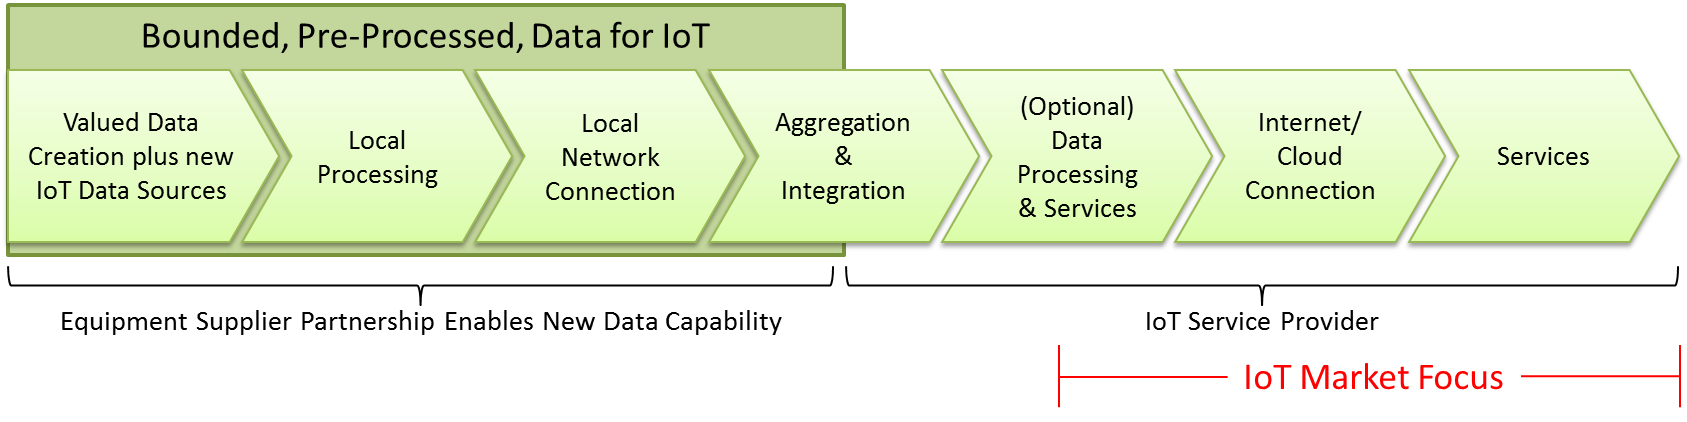 IoT Value Chain